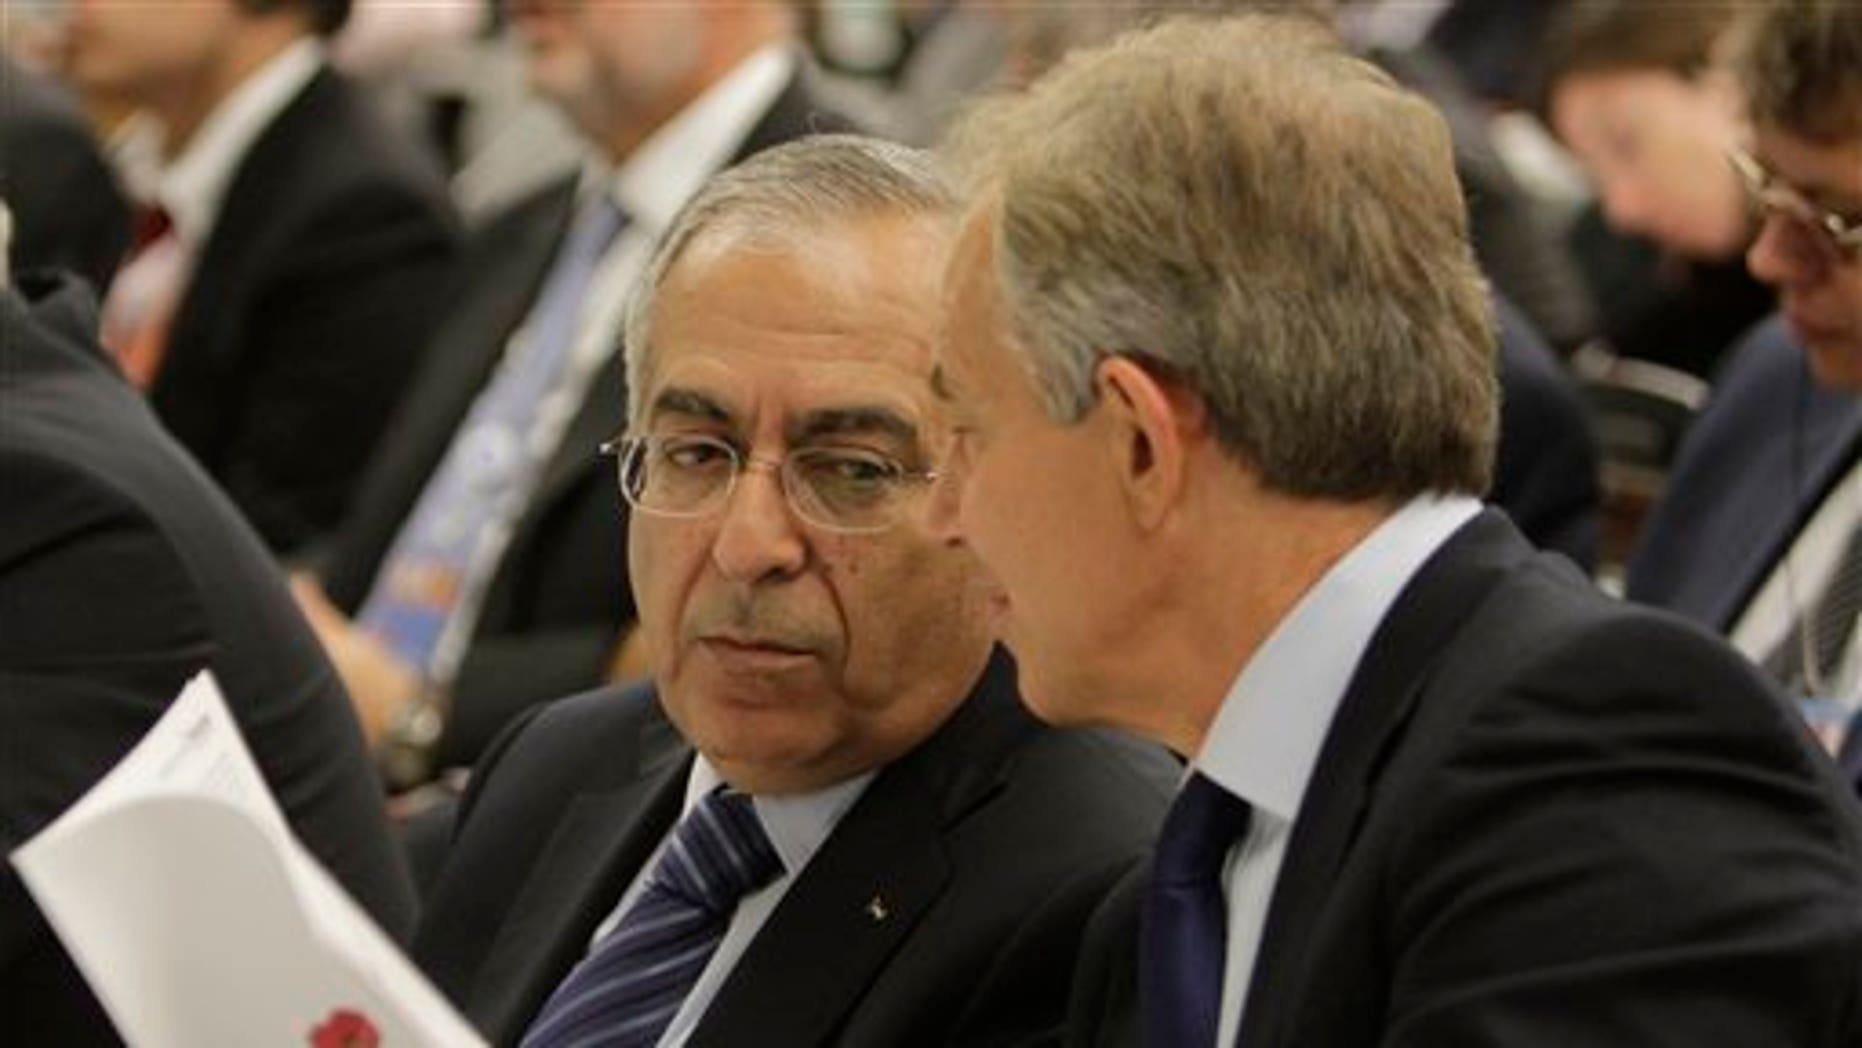 September 18: The Quartet Representative Tony Blair and Palestinian Prime Minister Salam Fayyad, participate in a meeting of the Ad Hoc Liaison Committee (AHLC), the donor support group for the Palestinians at United Nations headquarters.